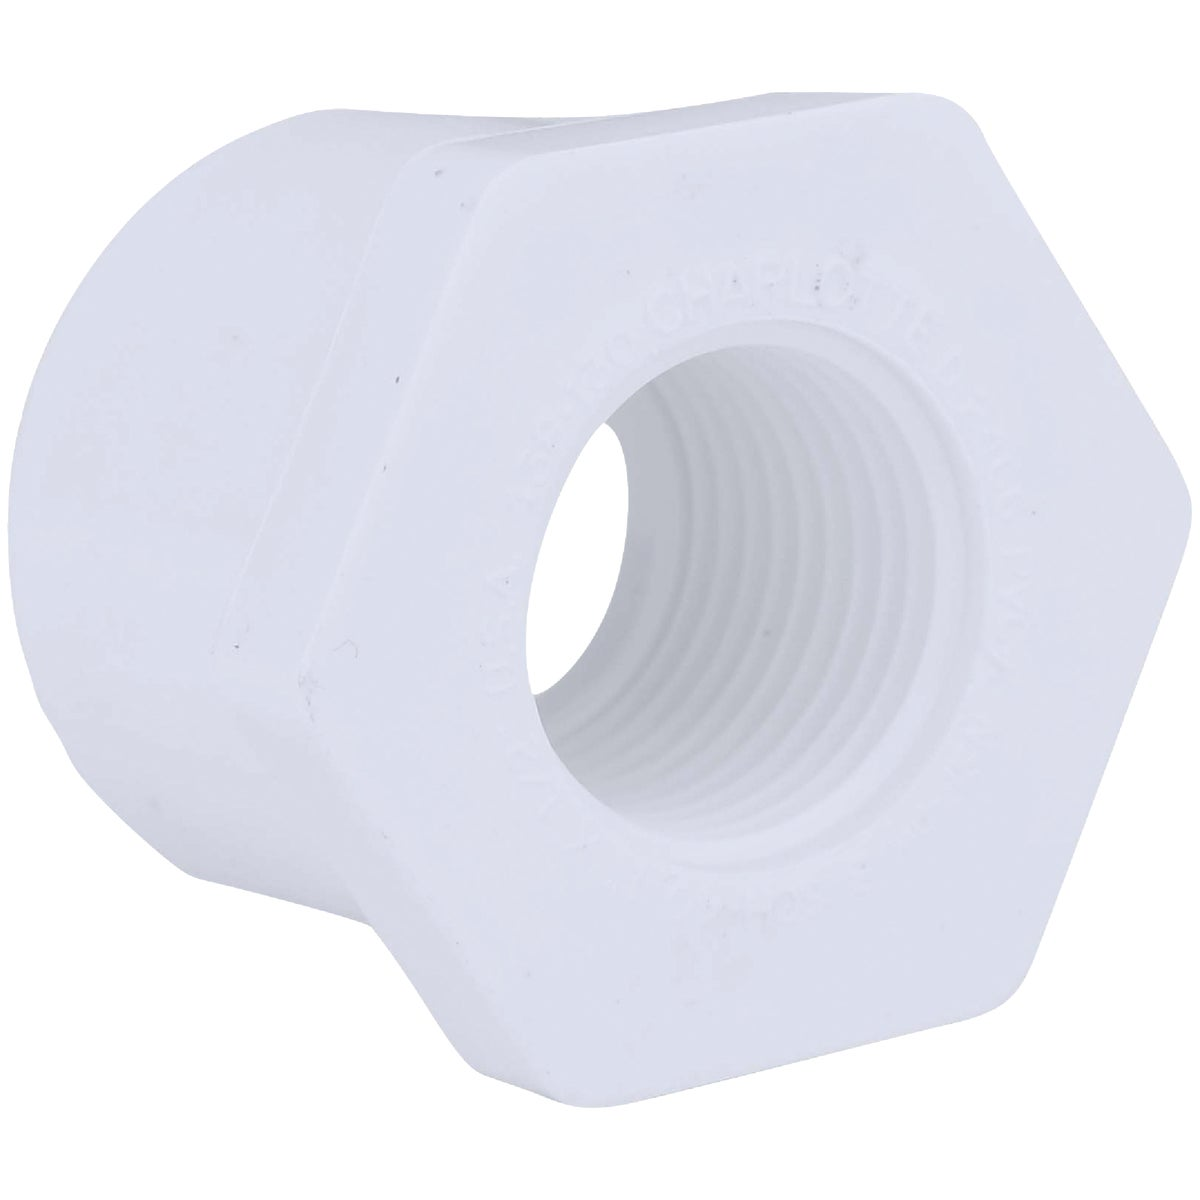 1X1/2 PVC SPXFIP BUSHING - 34215 by Genova Inc